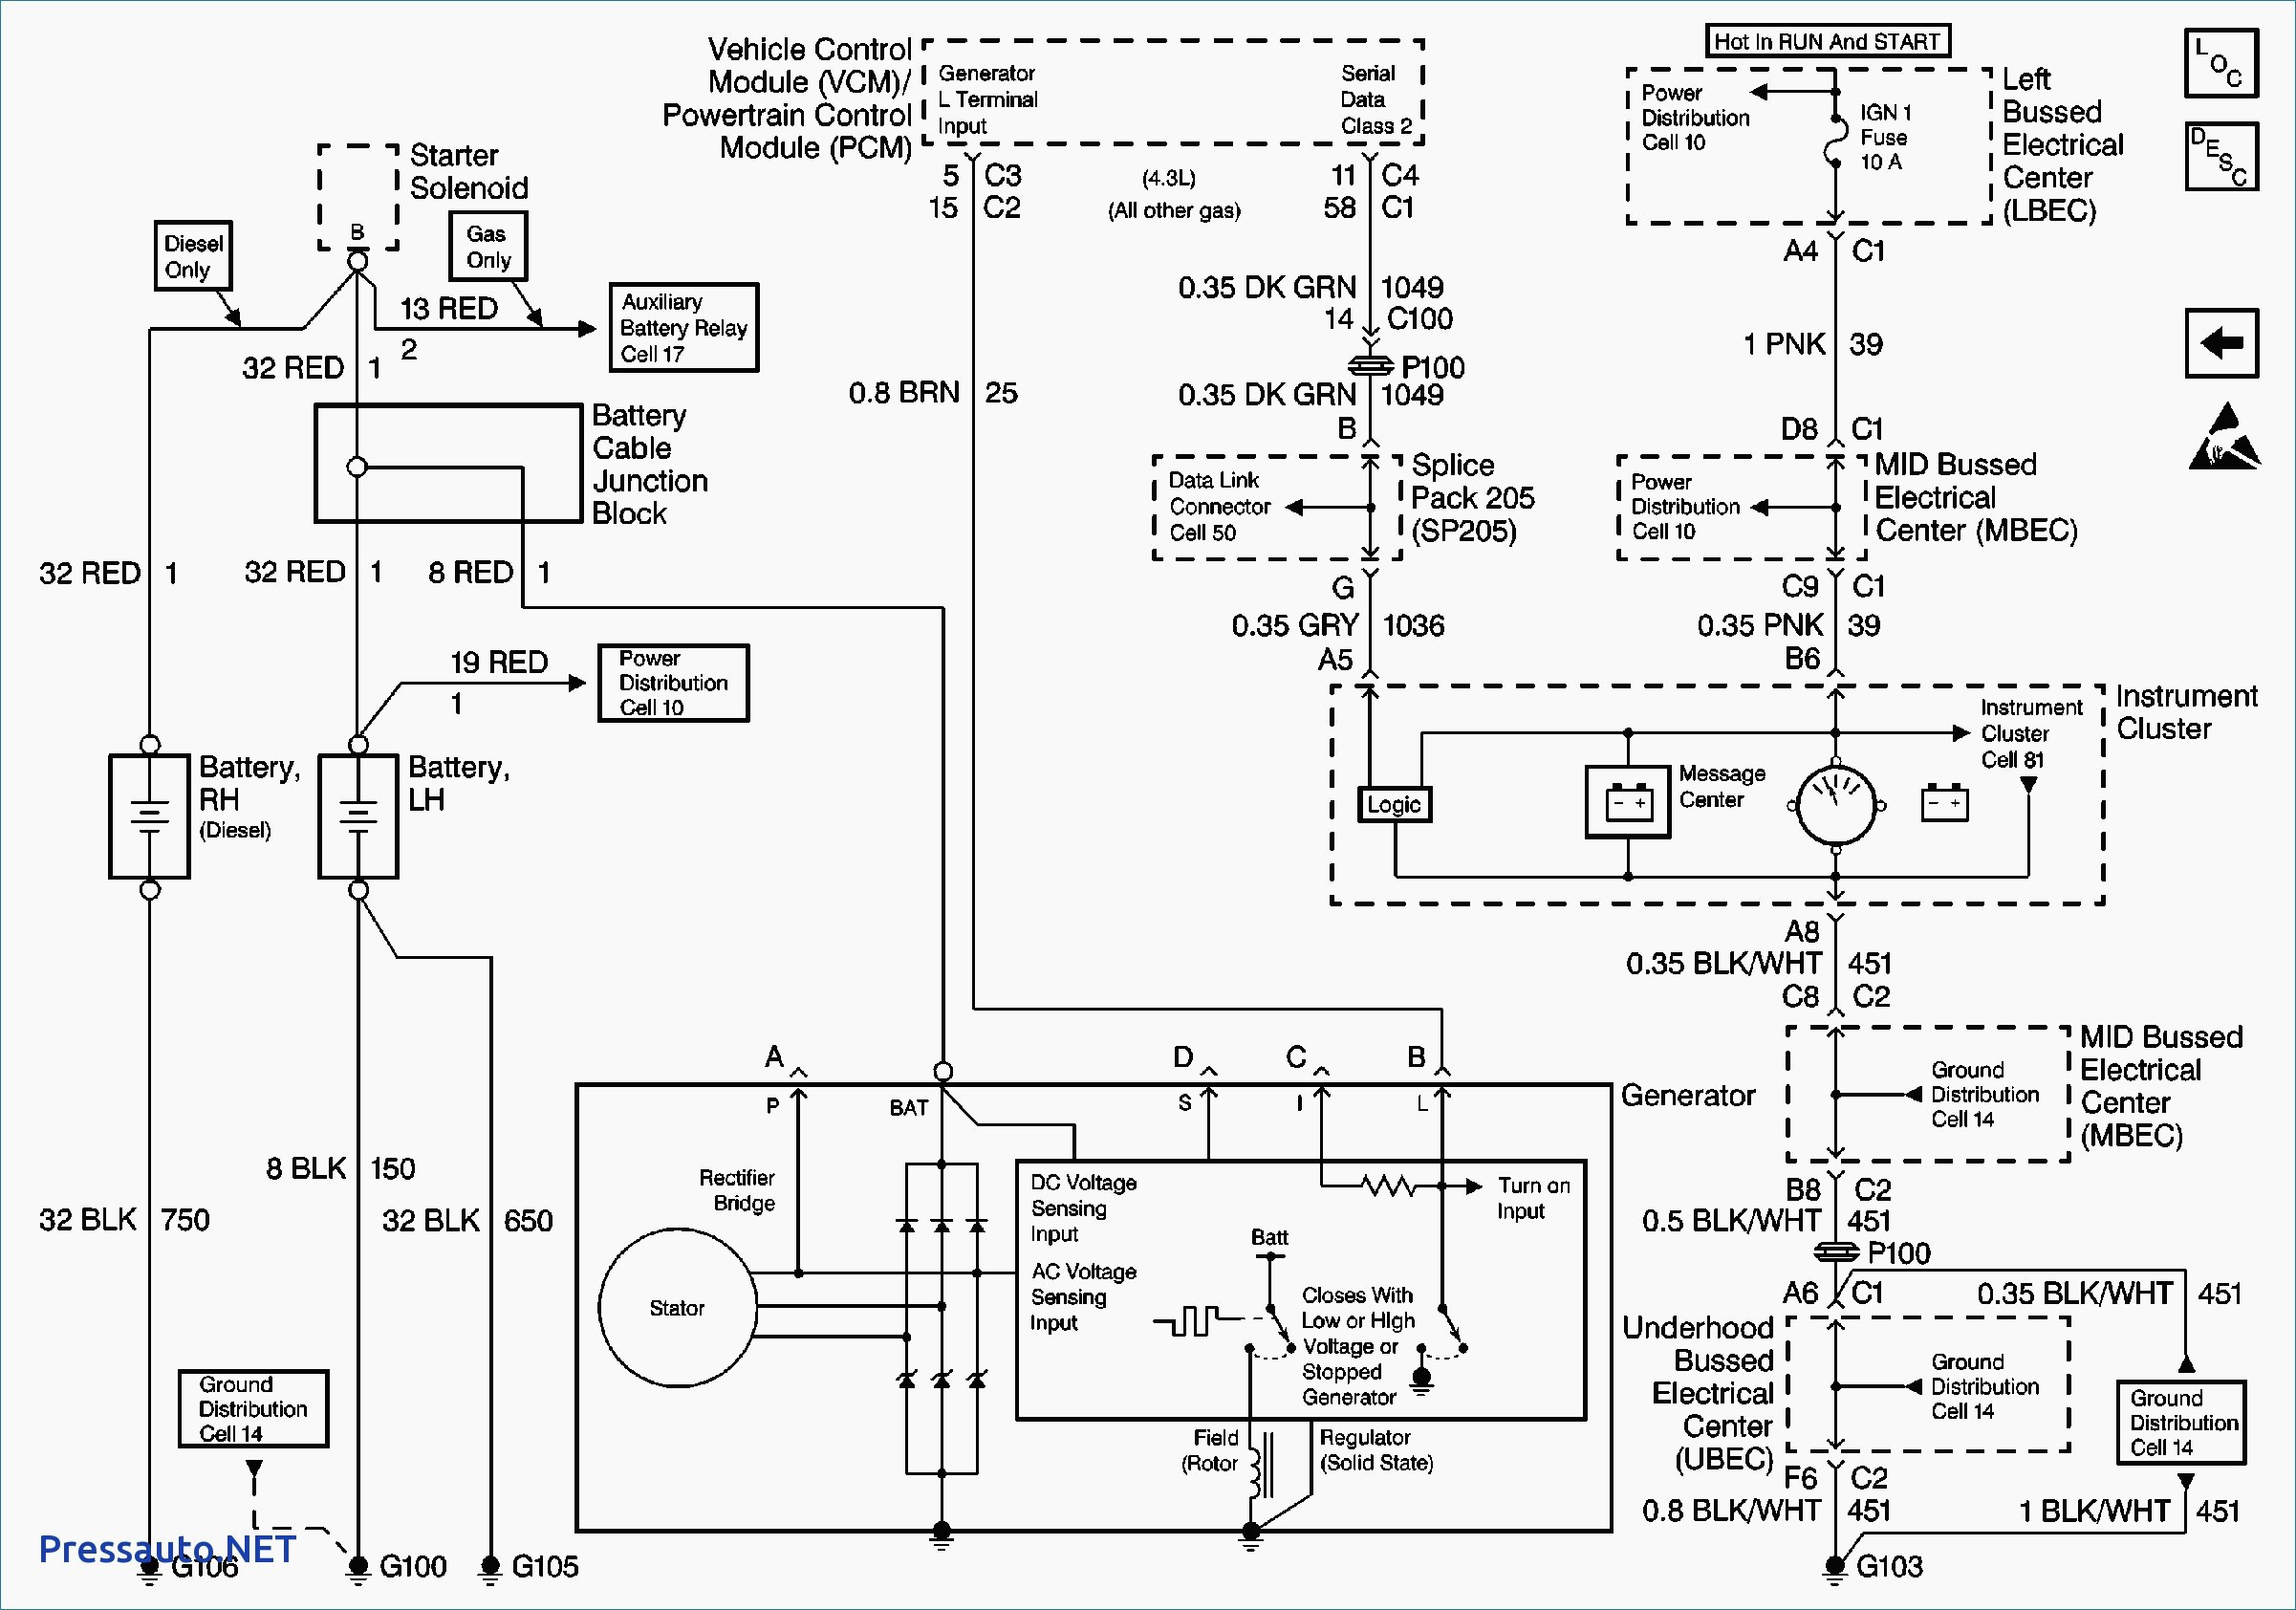 2014 chevrolet express trailer wiring schematic 2014 silverado trailer wiring diagram | trailer wiring diagram